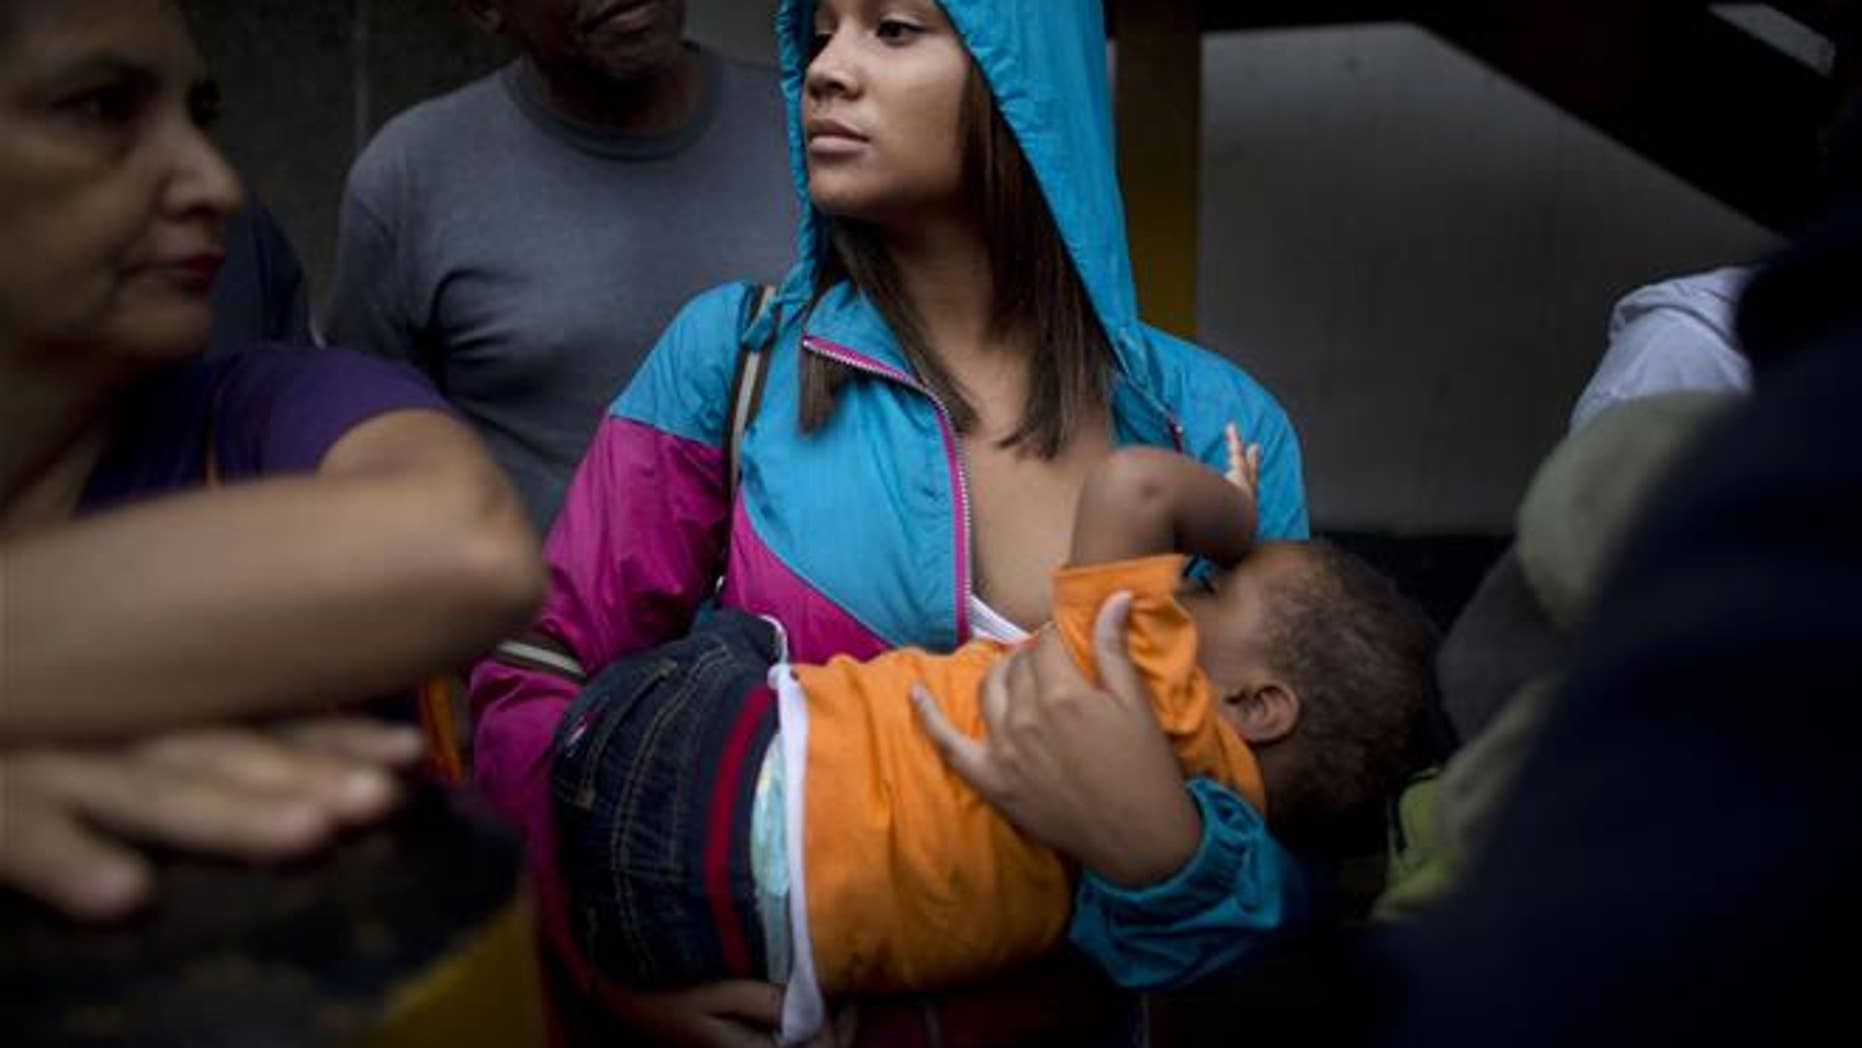 Madeley Vasquez, 16, breast feeds her one-year-old son Joangel as she waits in line outside a supermarket to buy food in Caracas, Venezuela.